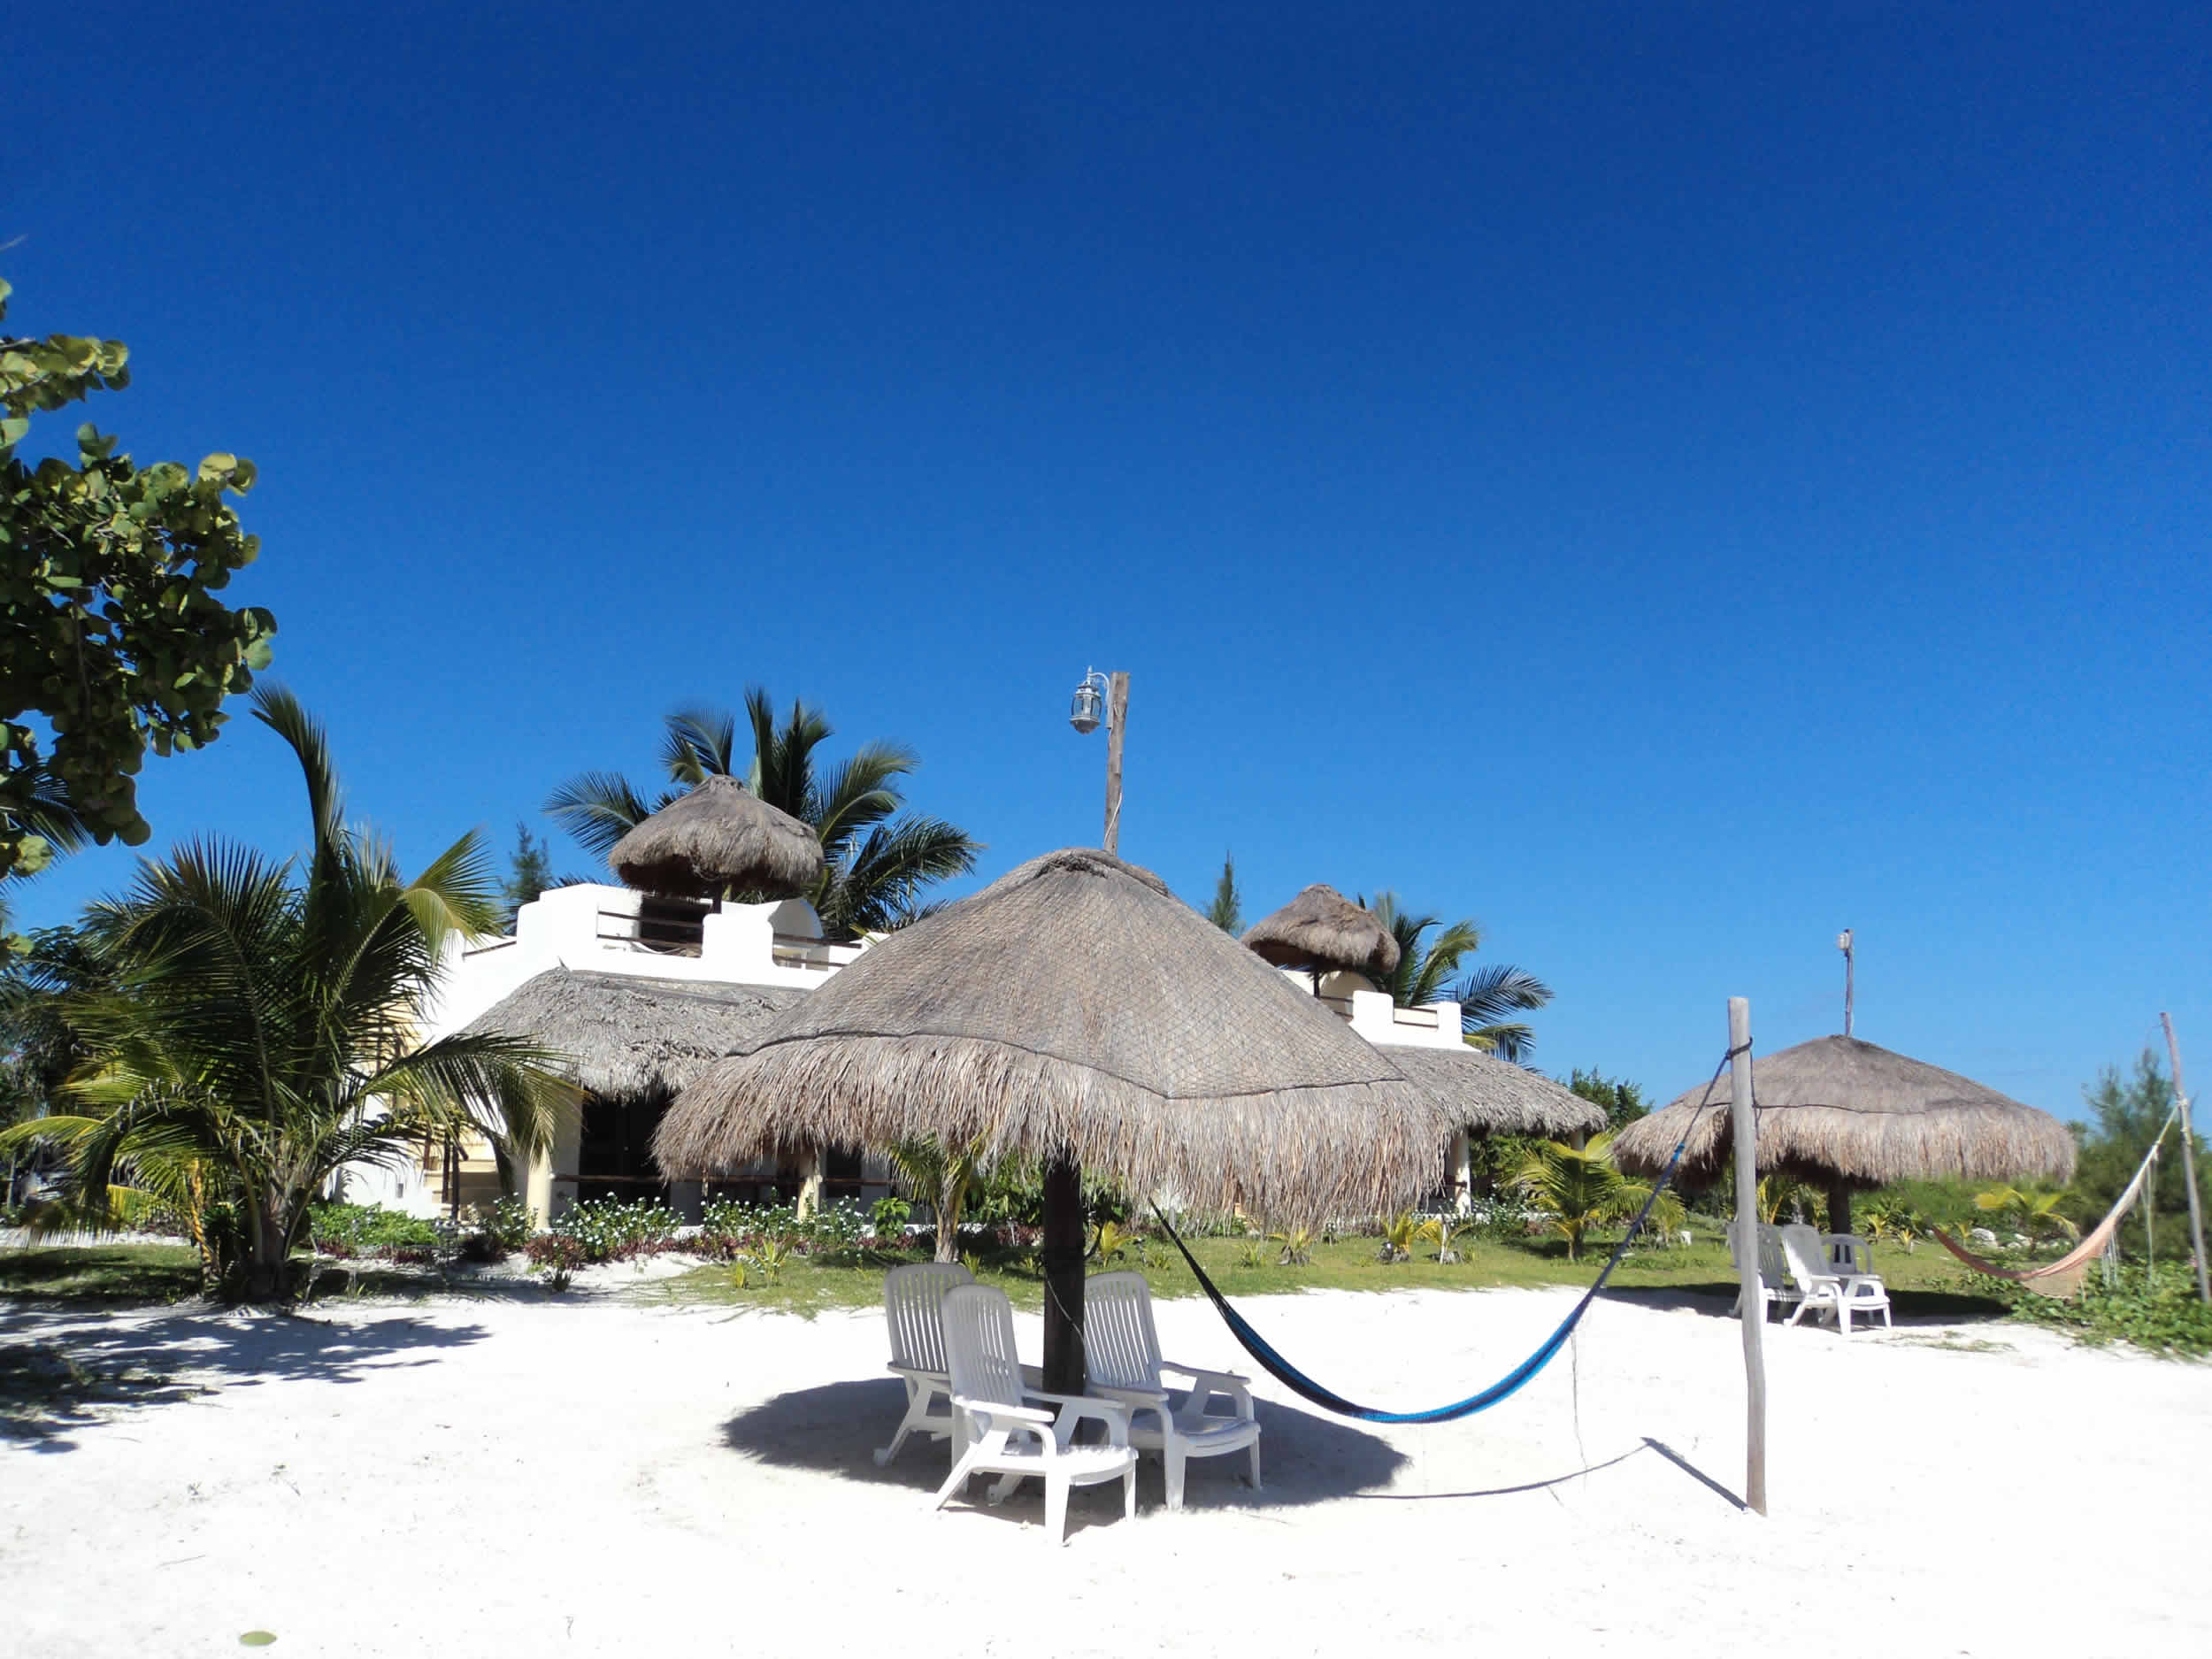 mexico eco /--/ sandos caracol eco resort has everything a family needs to experience the vacation of a lifetime there's so much fun to be had that you won't want to leave.